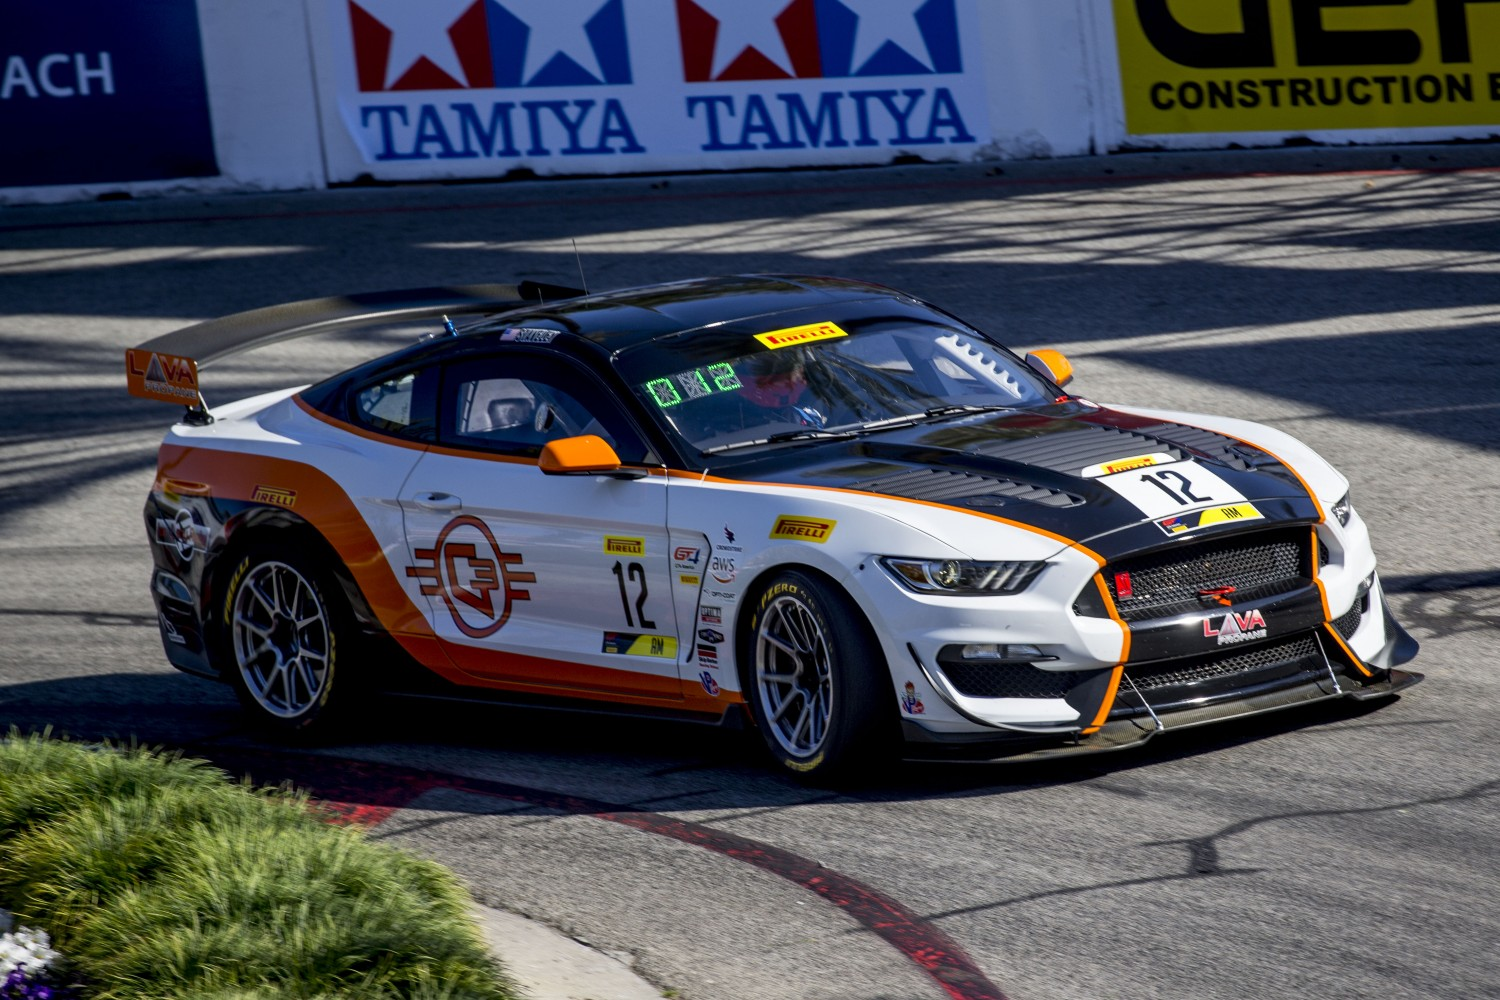 #12 Ford Mustang GT4 of Drew Stavely, Streets of Long Beach, Long Beach, CA.